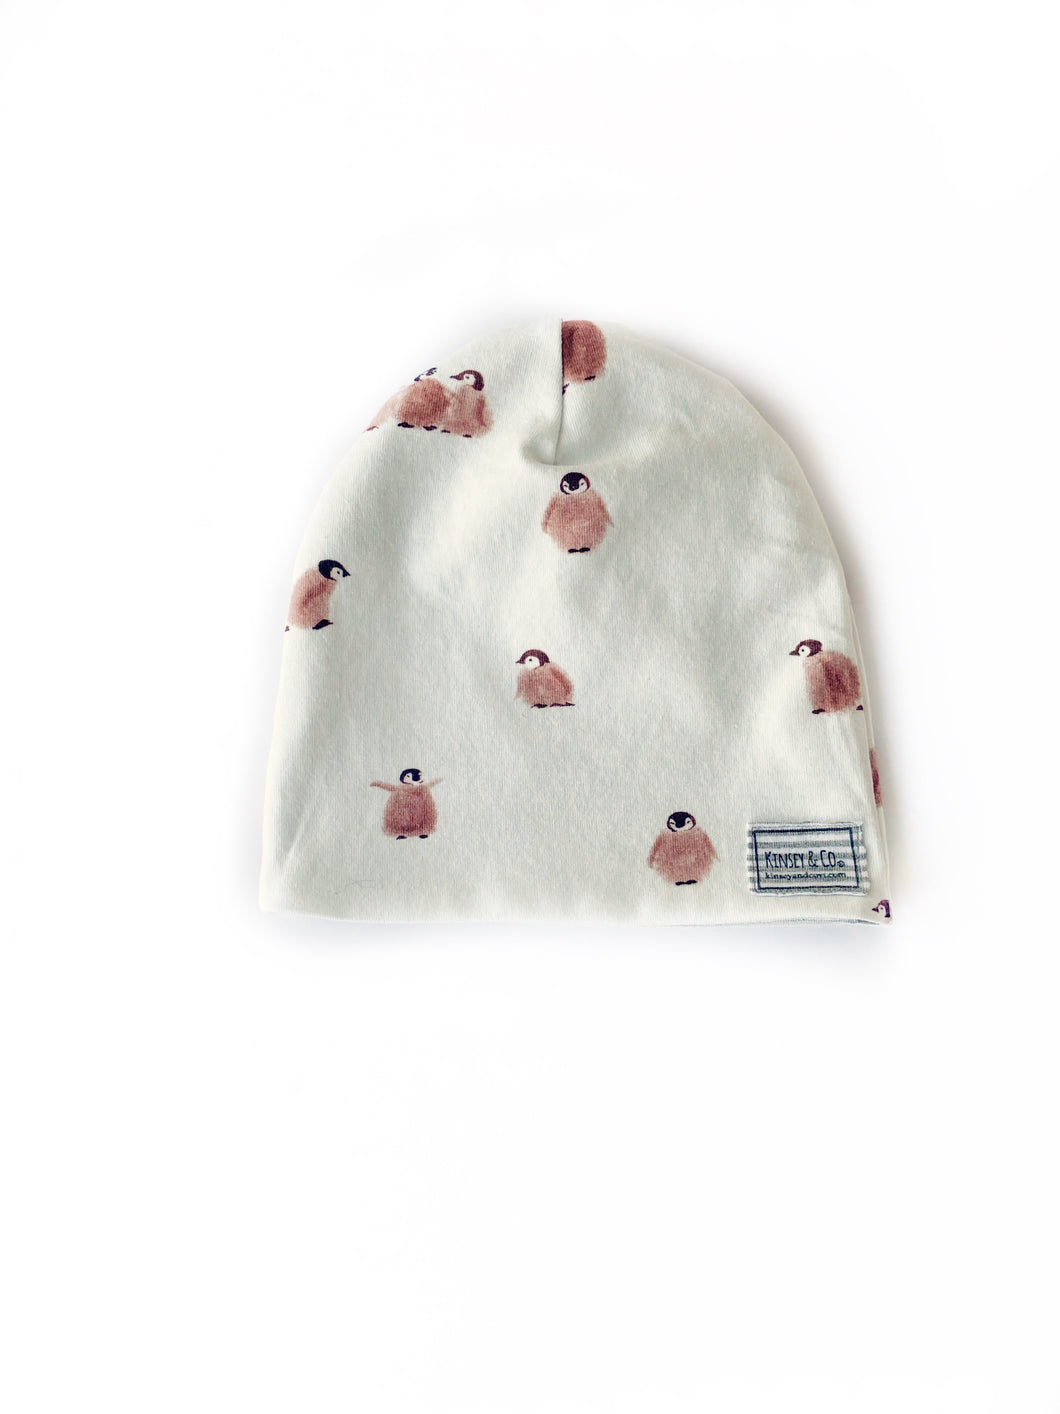 Little Penguin Winter Beanie Sizes Baby-Adult